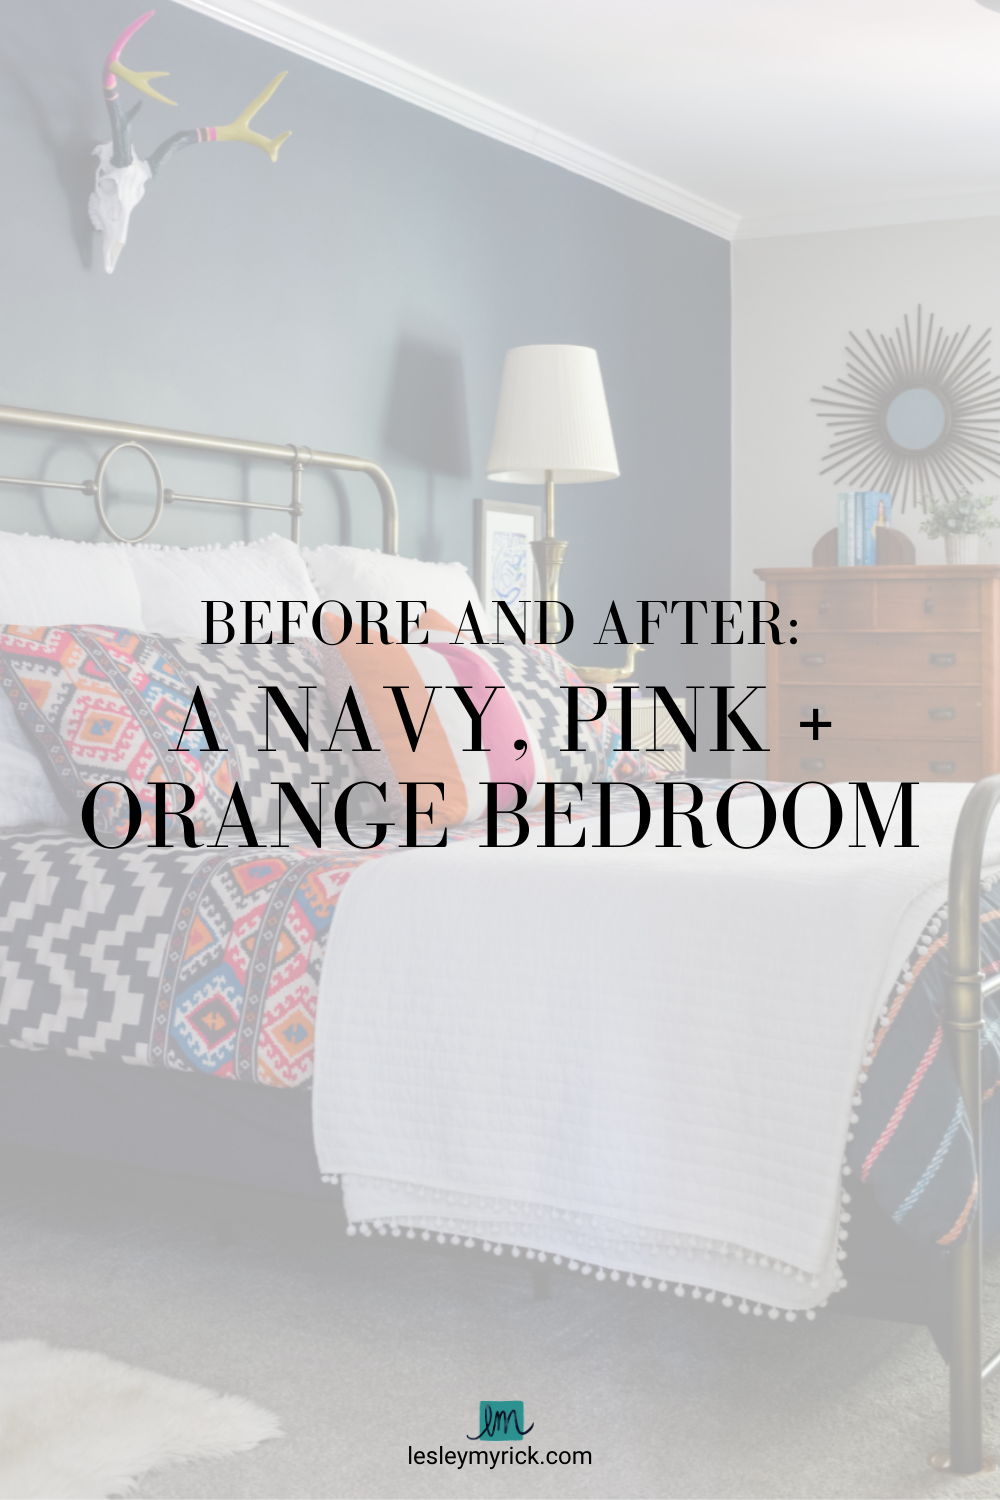 Before and After: A Navy, Pink and Orange Bedroom